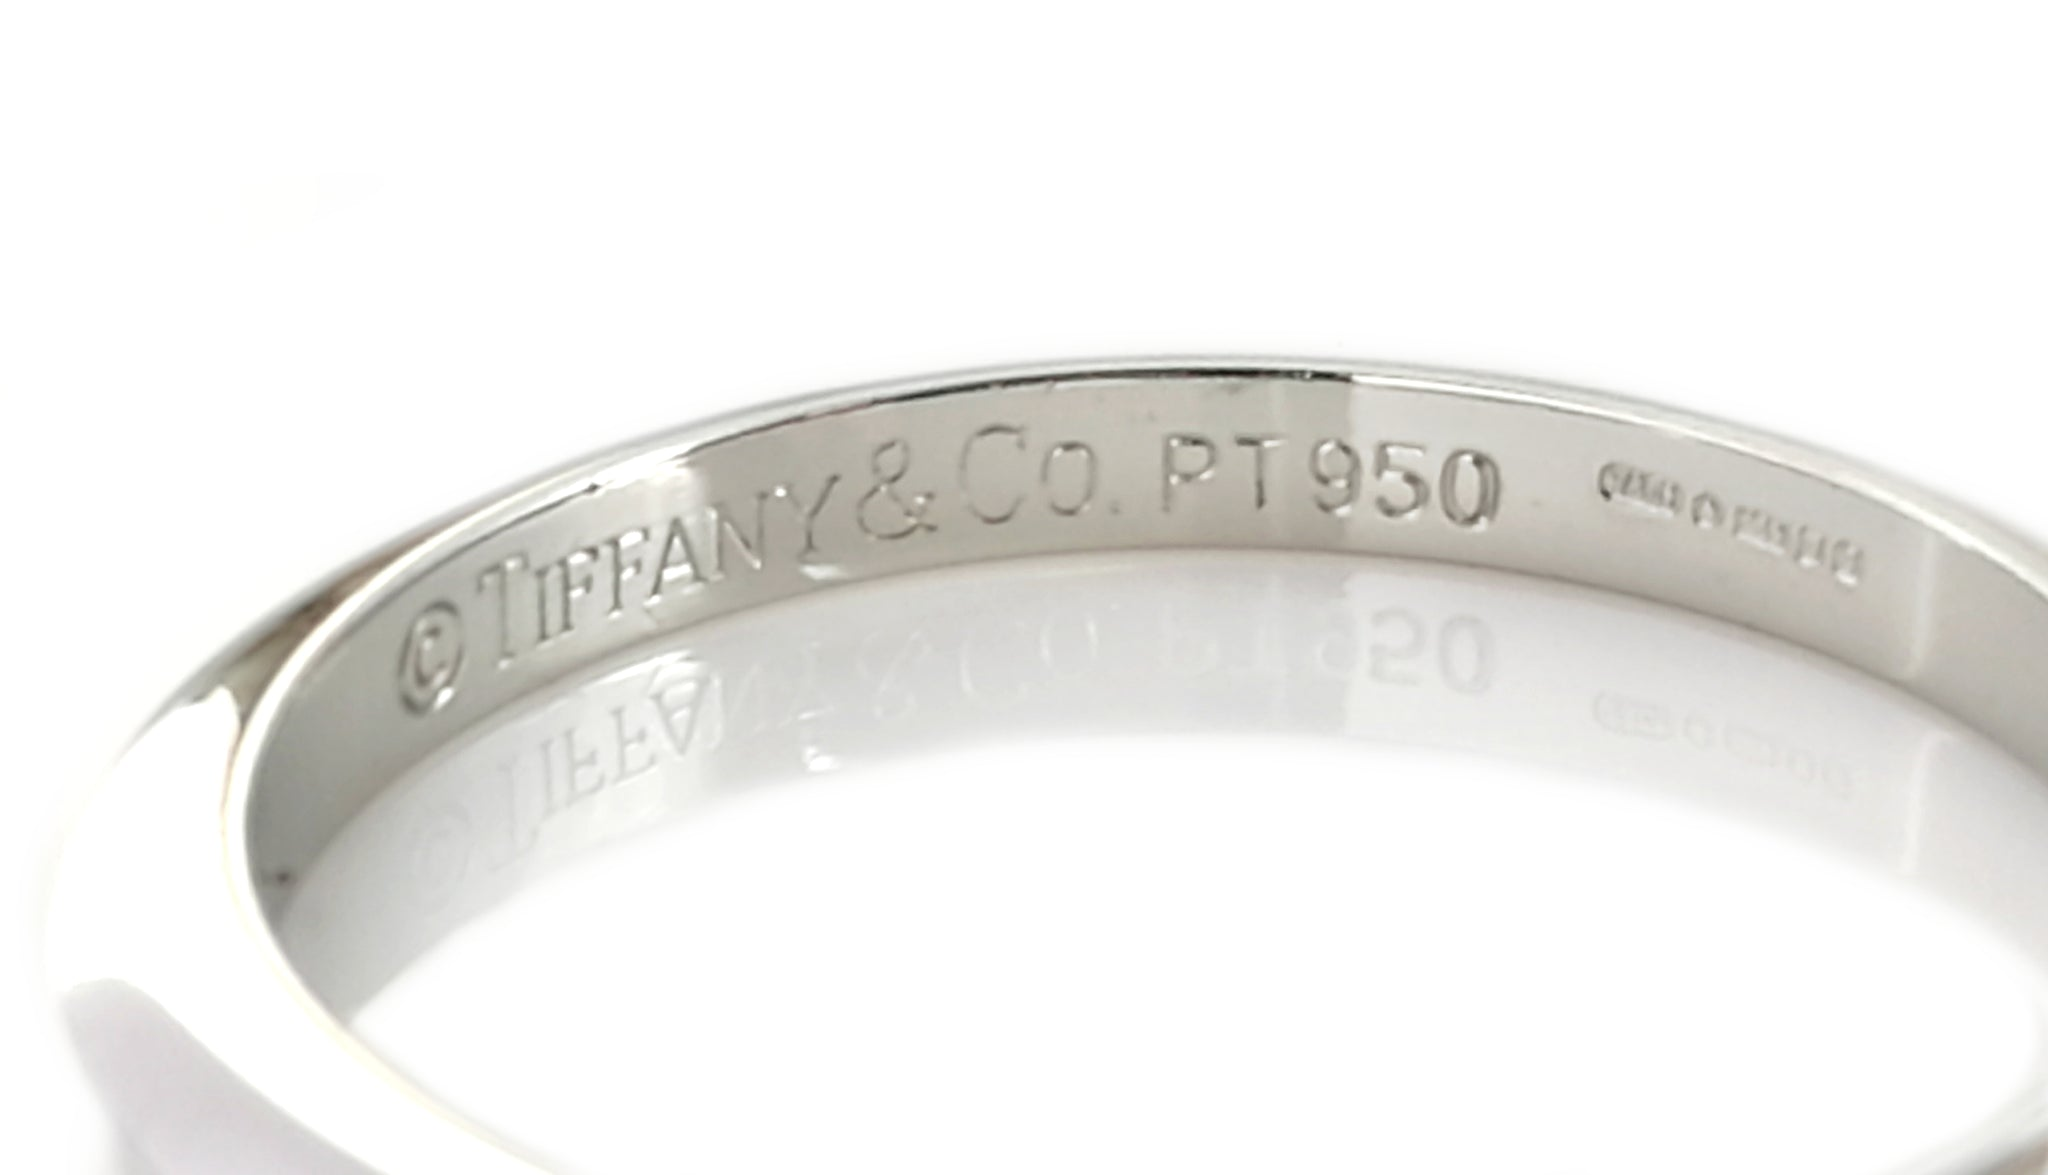 Tiffany co knife edge platinum wedding band ring size j knife edge platinum wedding band ring size j junglespirit Gallery